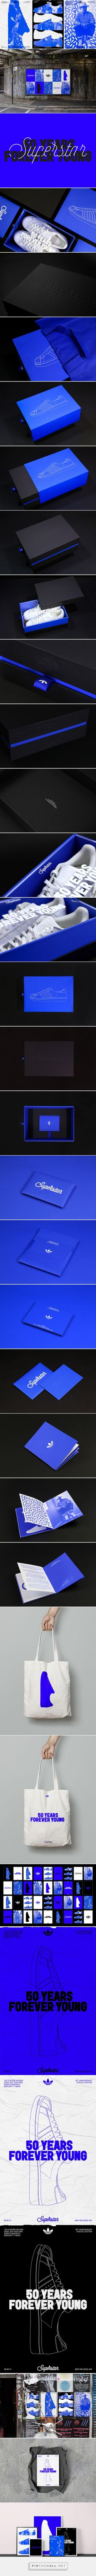 Adidas Superstar 50th Anniversary: Forever Young on Behance - created via https://pinthemall.net